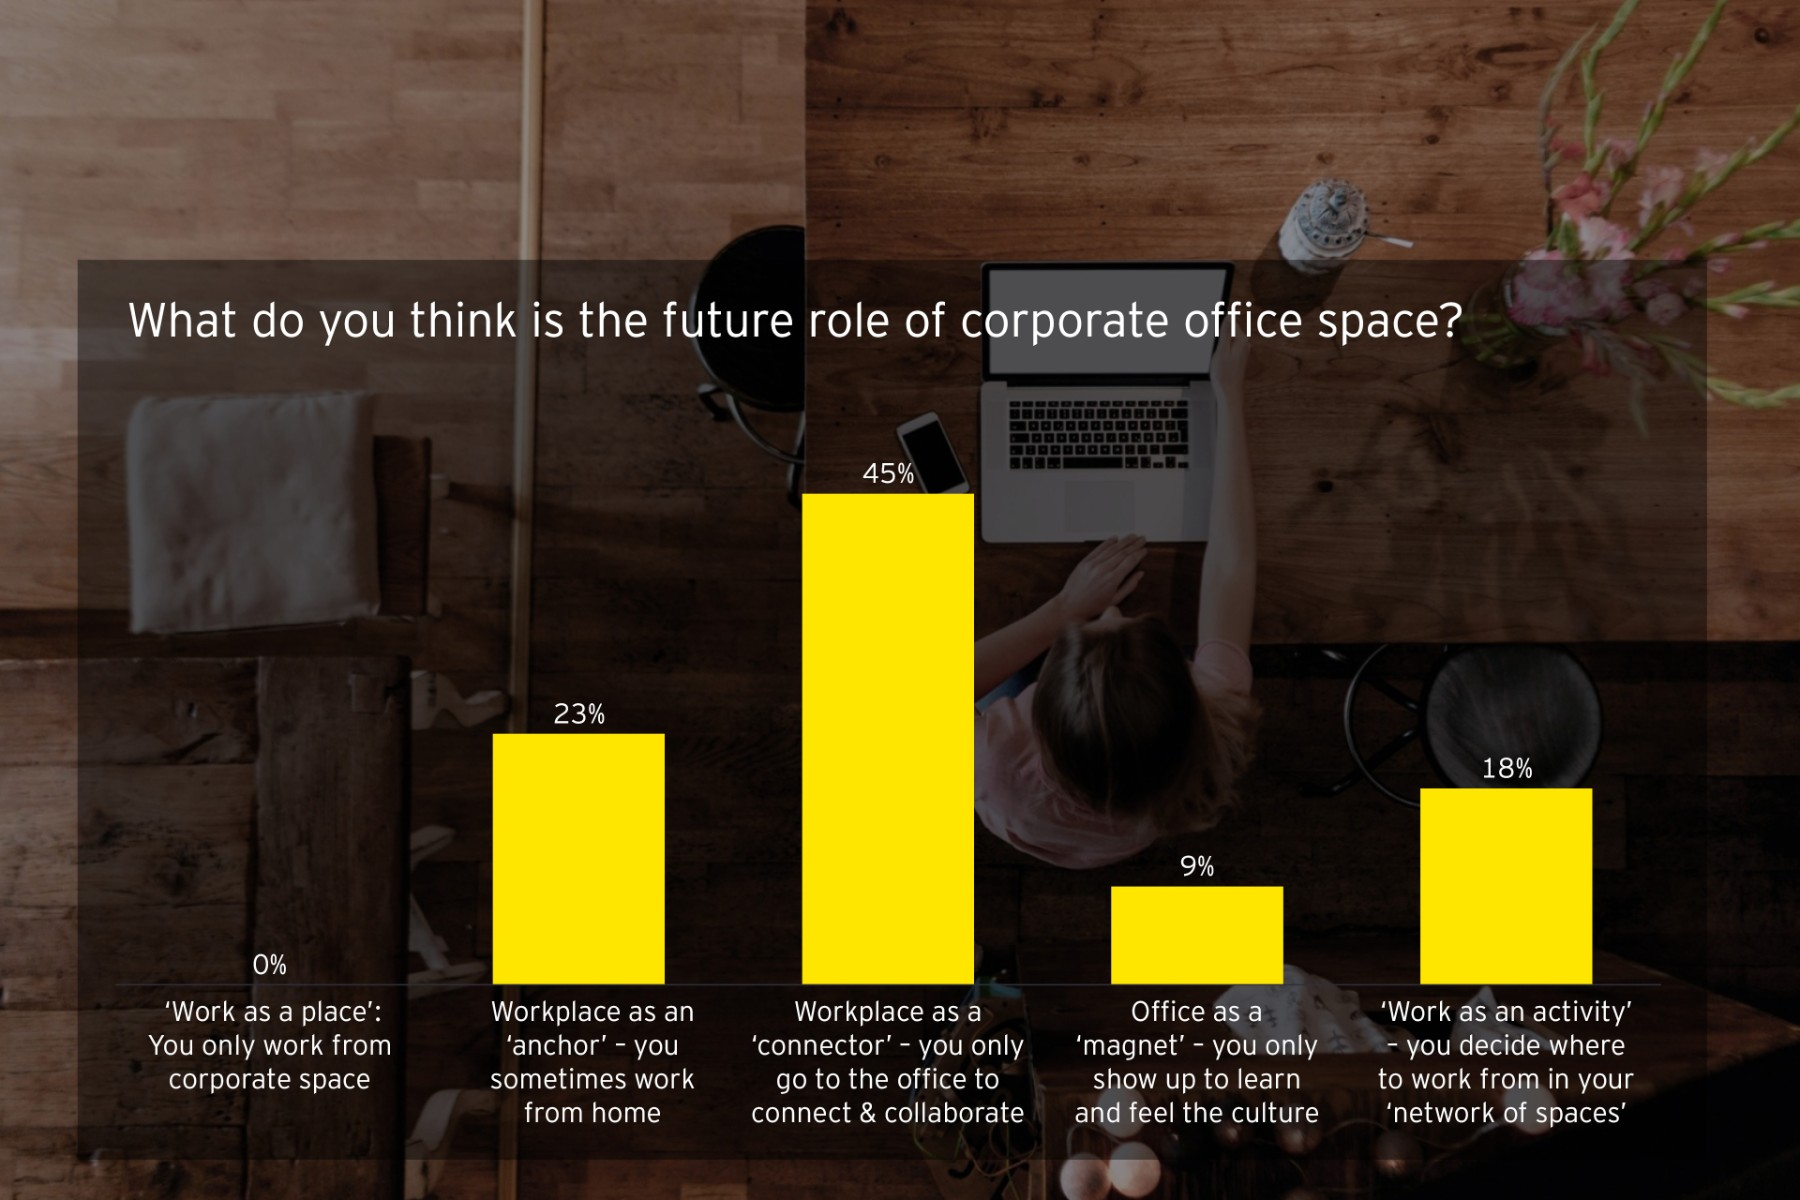 ey-article-work-reimagined-the-sustainable-and-inclusive-workplace-of-the-future-pic2.jpg.rendition.1800.1200